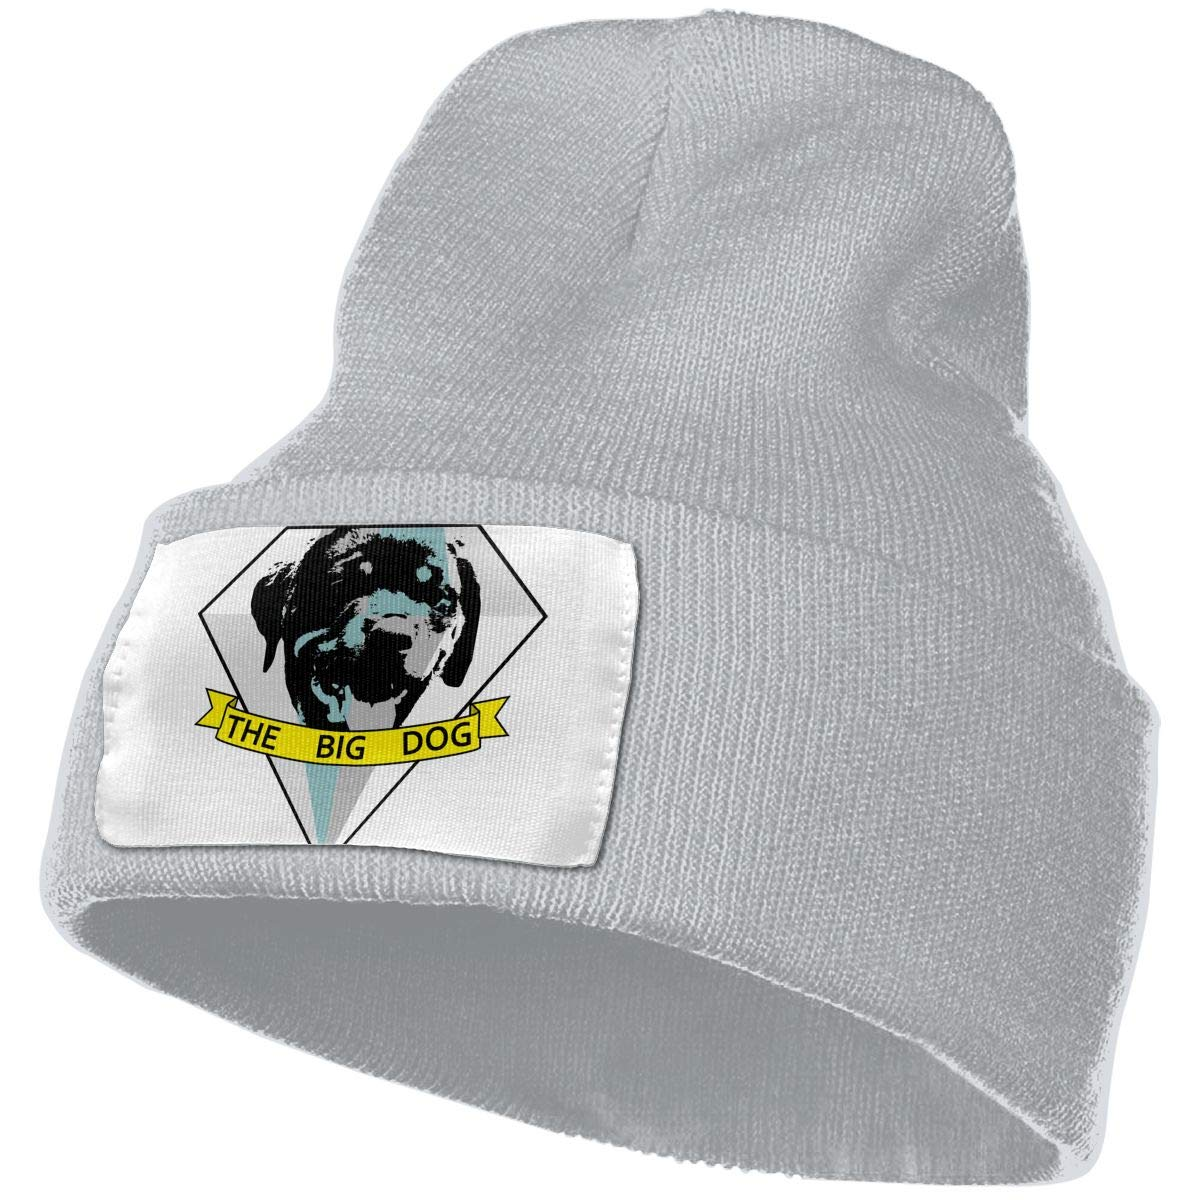 Diamond Dogs Unisex Fashion Knitted Hat Luxury Hip-Hop Cap